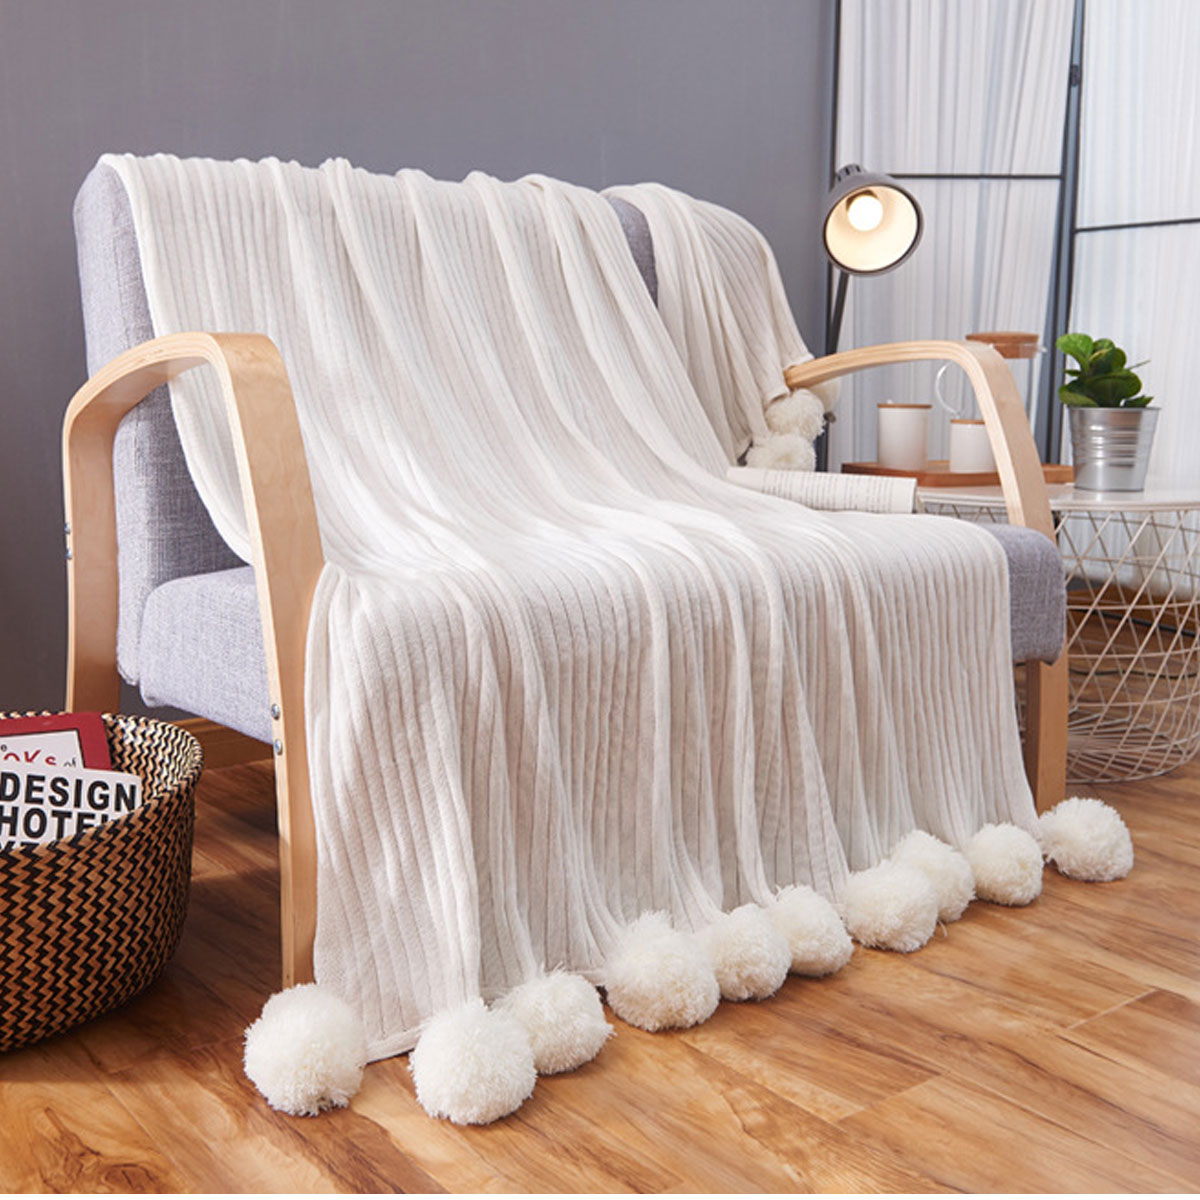 100x105cm Soft Reversible Pom Pom Cotton Knit Blanket Bed Sofa Knitted Rug Throw 39''x41''